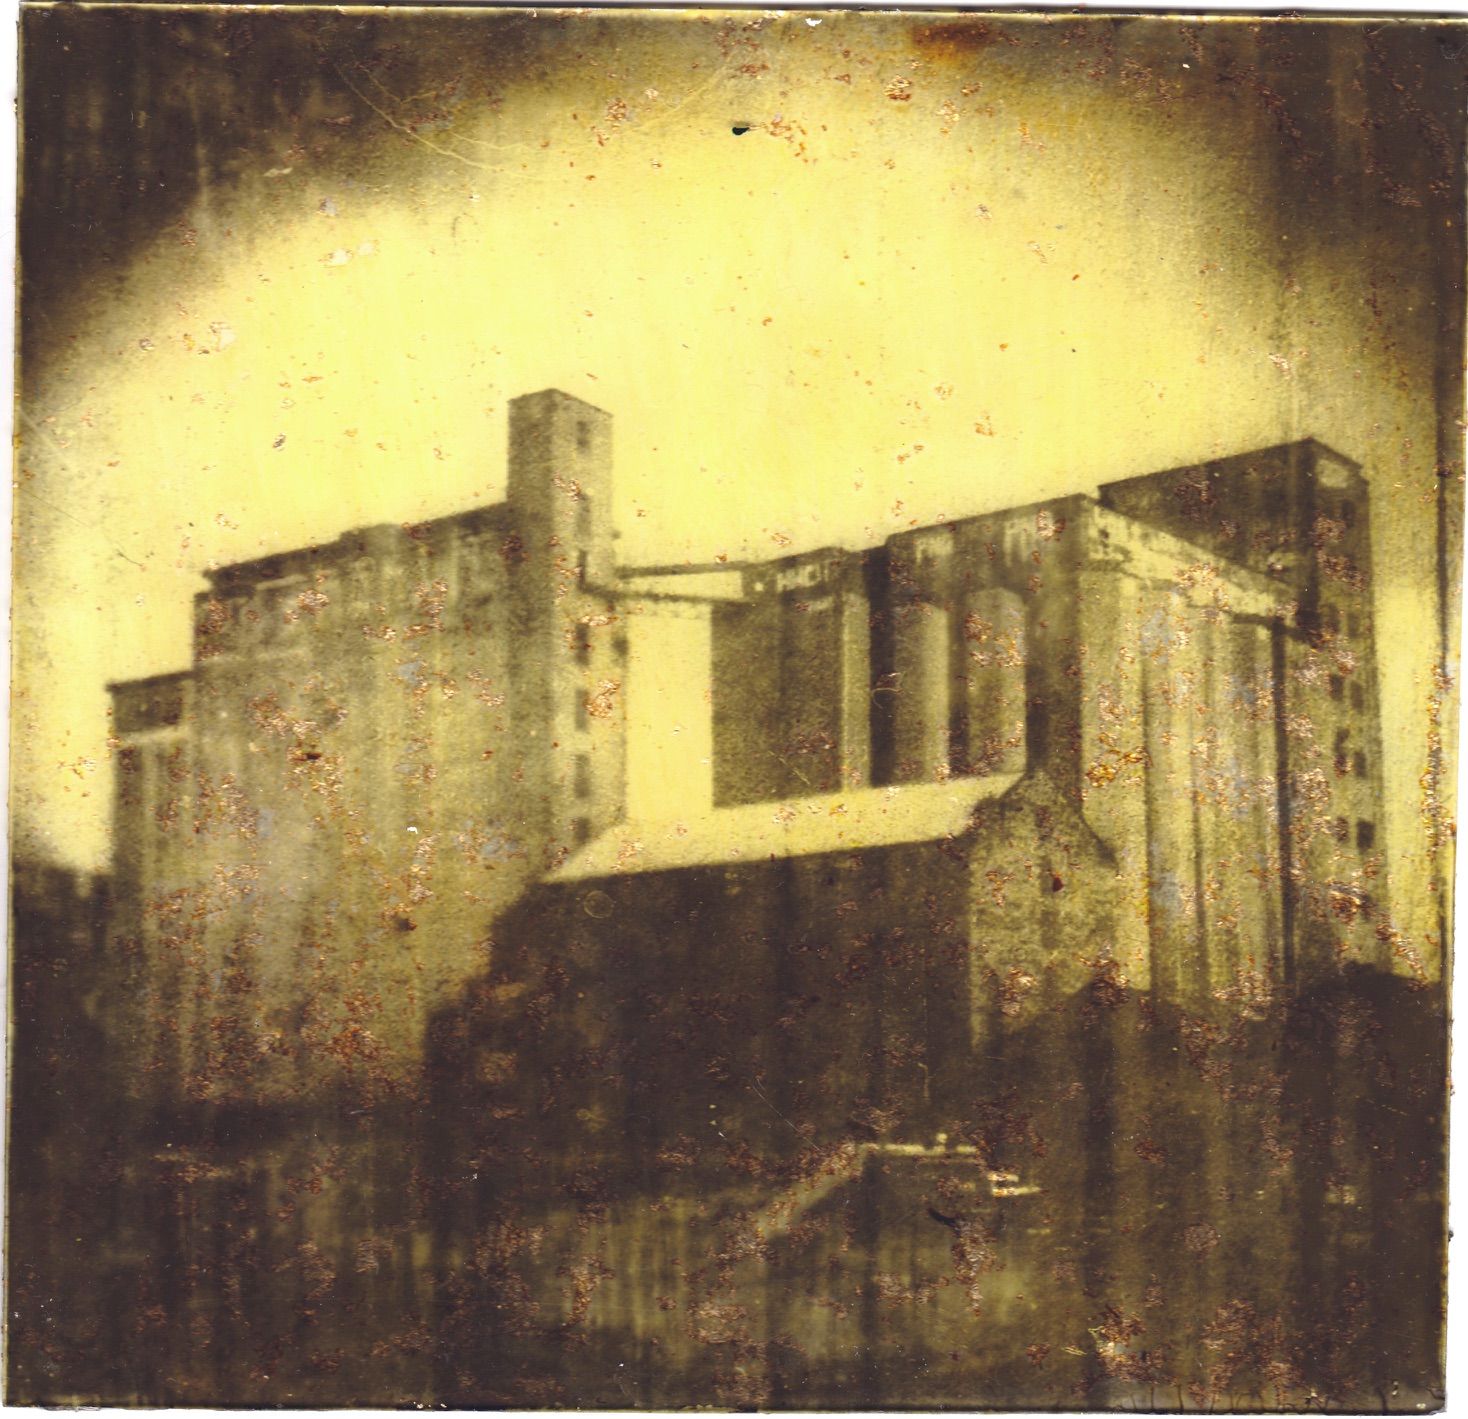 Joby Hickey, Boland Golden Mills, handprinted photgraphic plate on glass, 18 x 18cm